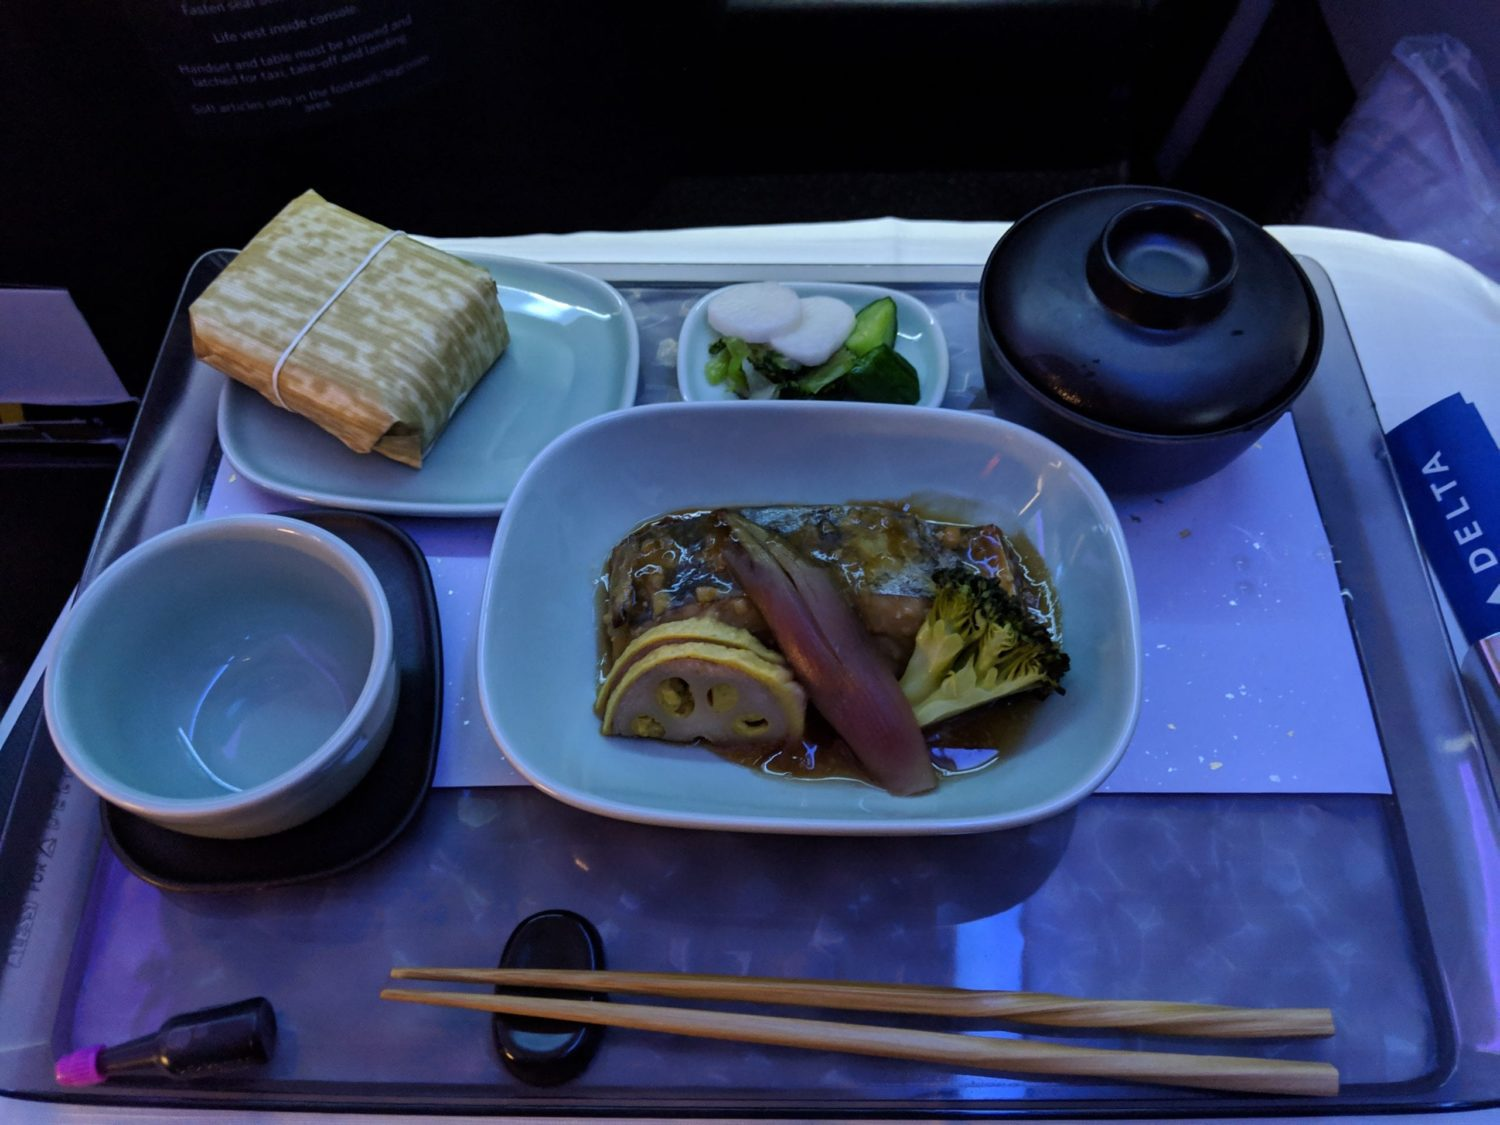 Delta One Suite meal